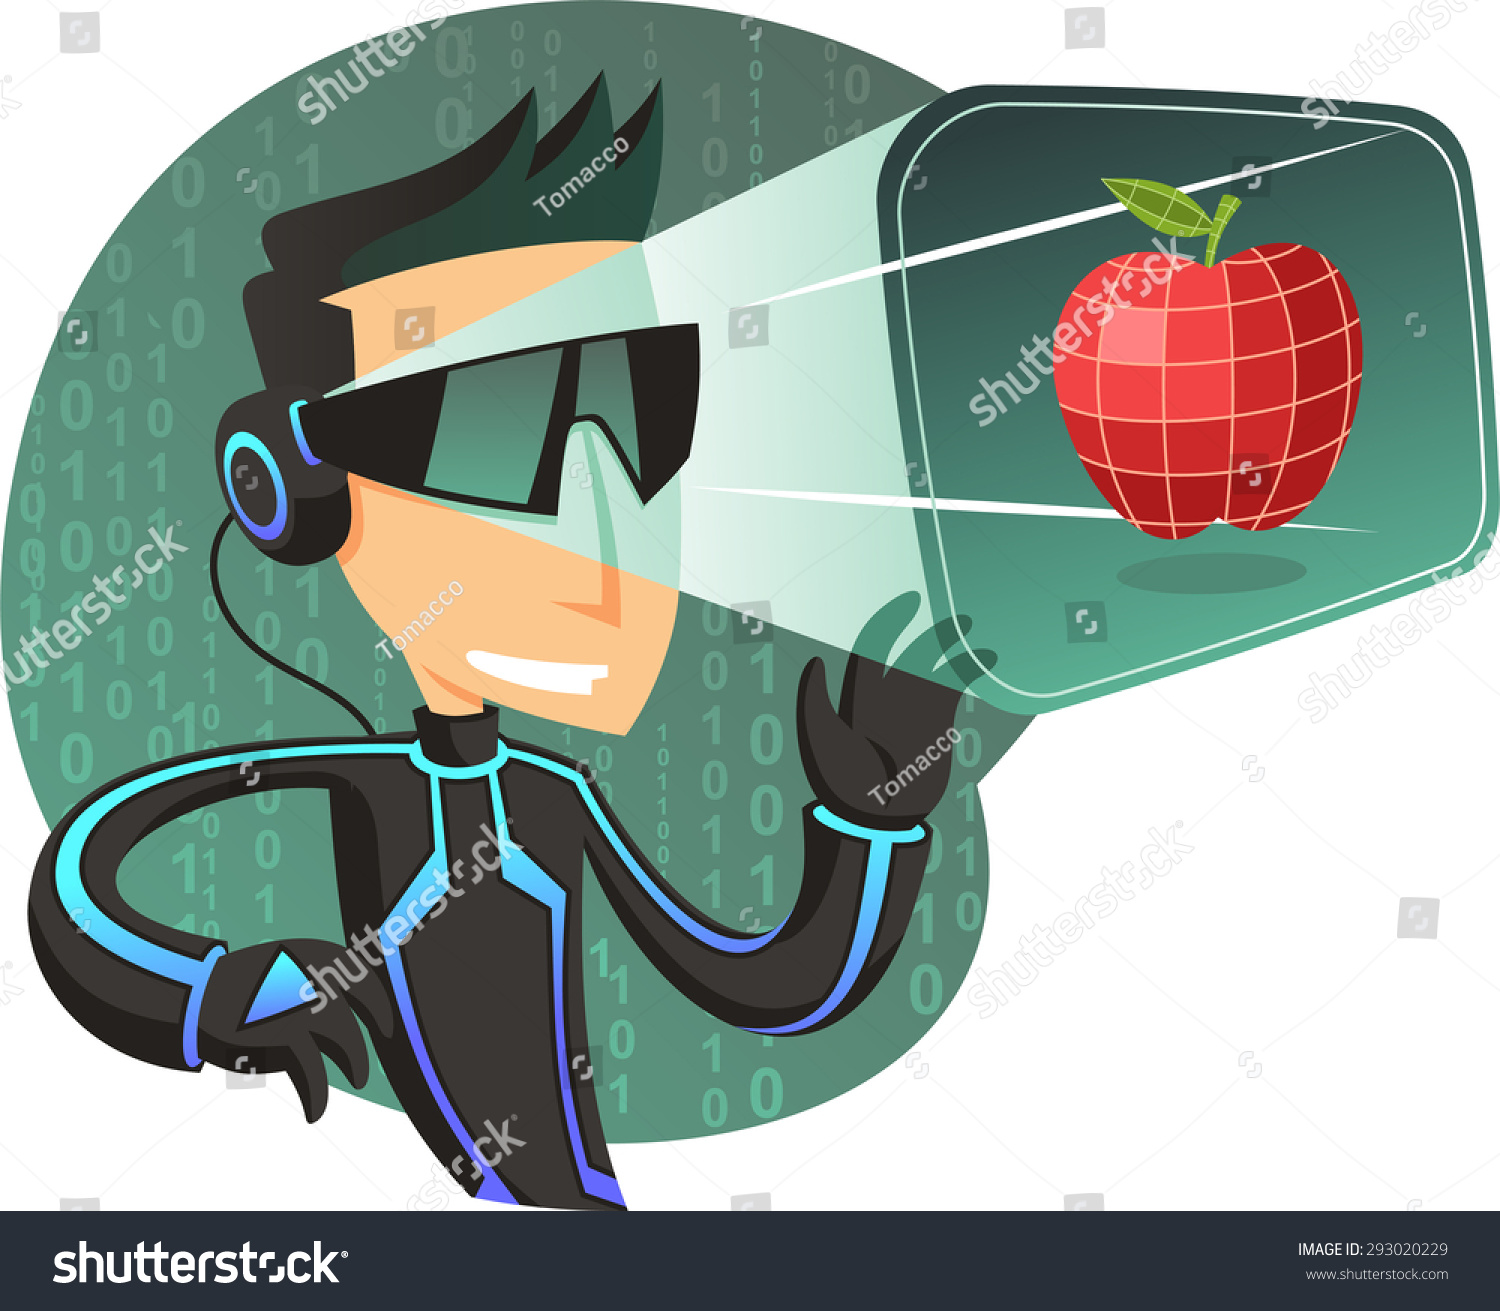 Collection Of Simulator Clipart: Virtual Reality Simulator Headset, Vector Illustration